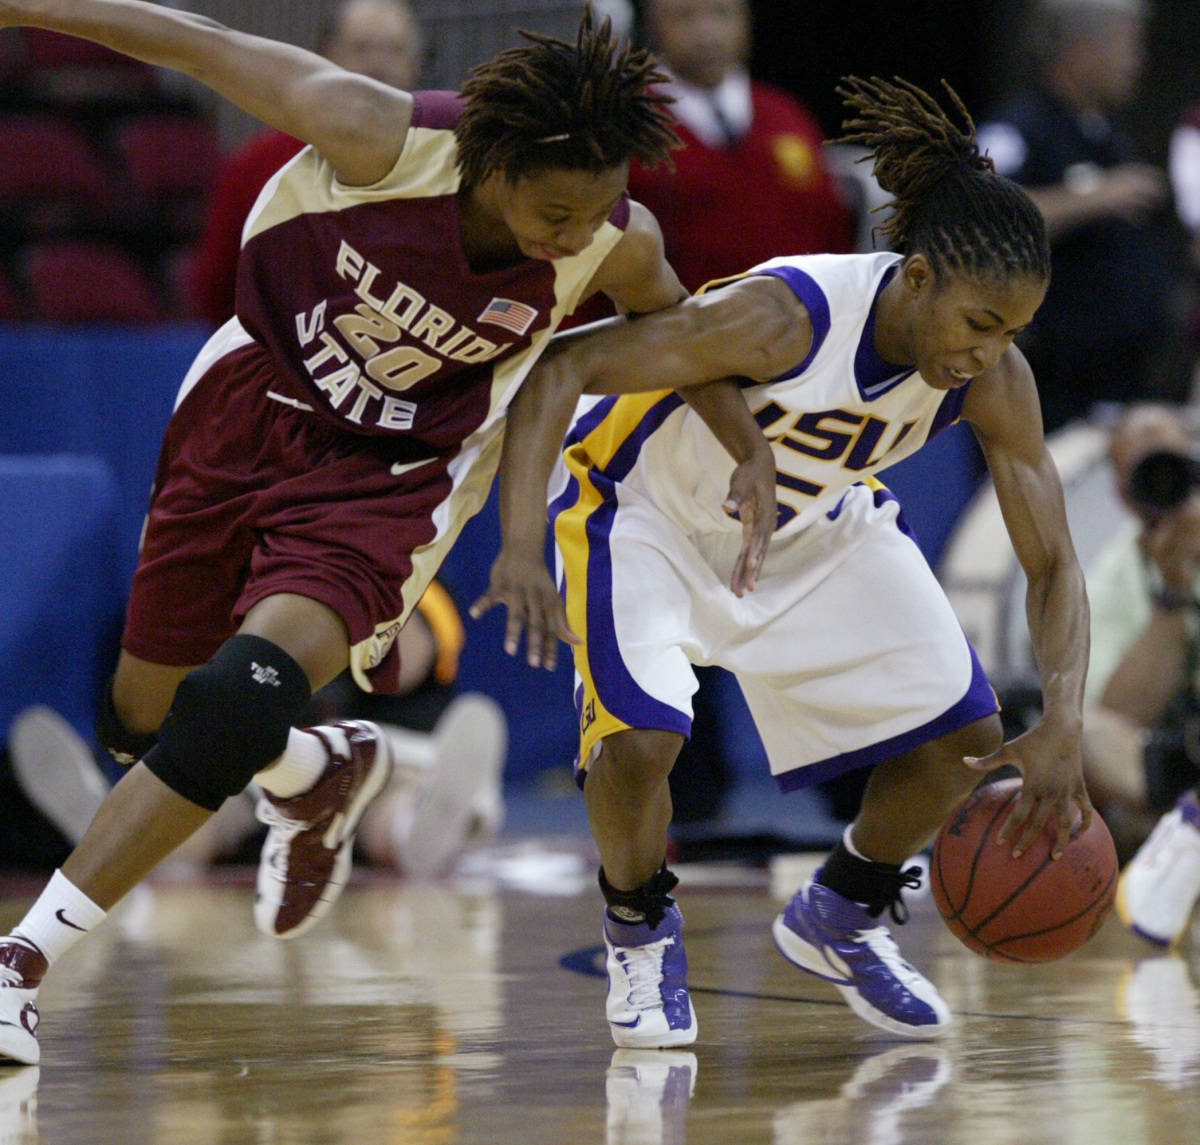 Florida State's Tanae Davis-Cain tries to steal the ball from Louisiana State's Erica White during the first half of a regional semifinal in the NCAA women's basketball tournament in Fresno, Calif., Saturday, March 24, 2007. (AP Photo/Gary Kazanjian)